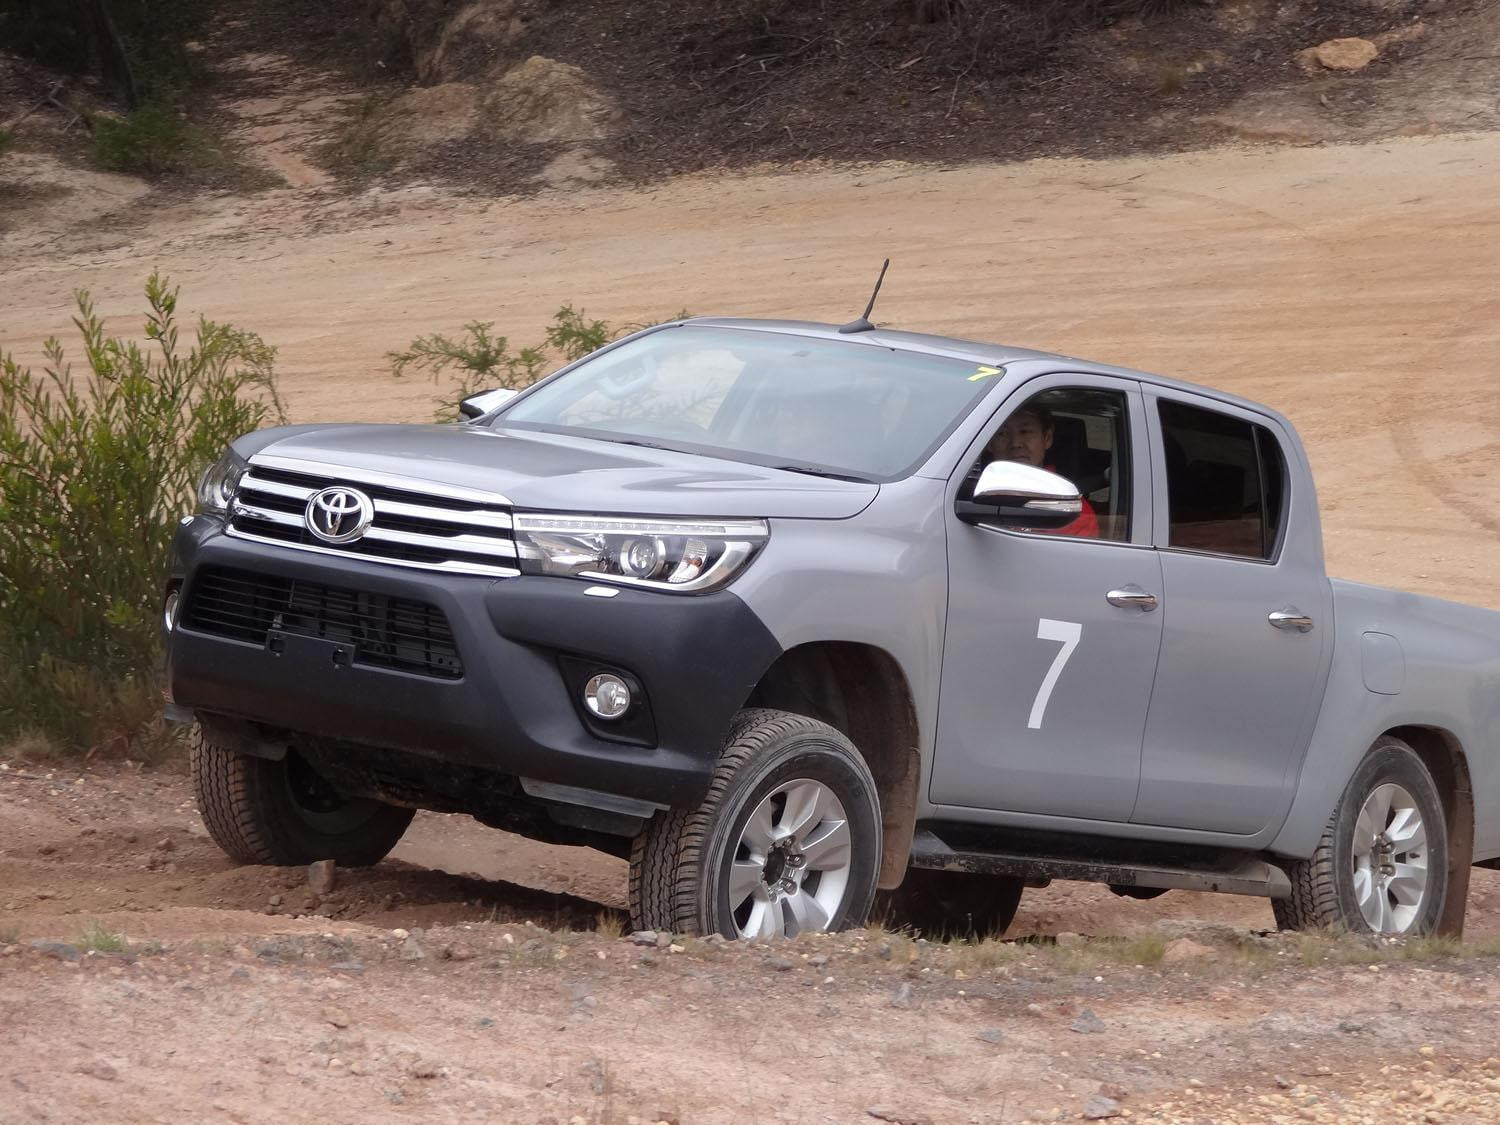 2016 Toyota Hilux News Specs Pictures Digital Trends